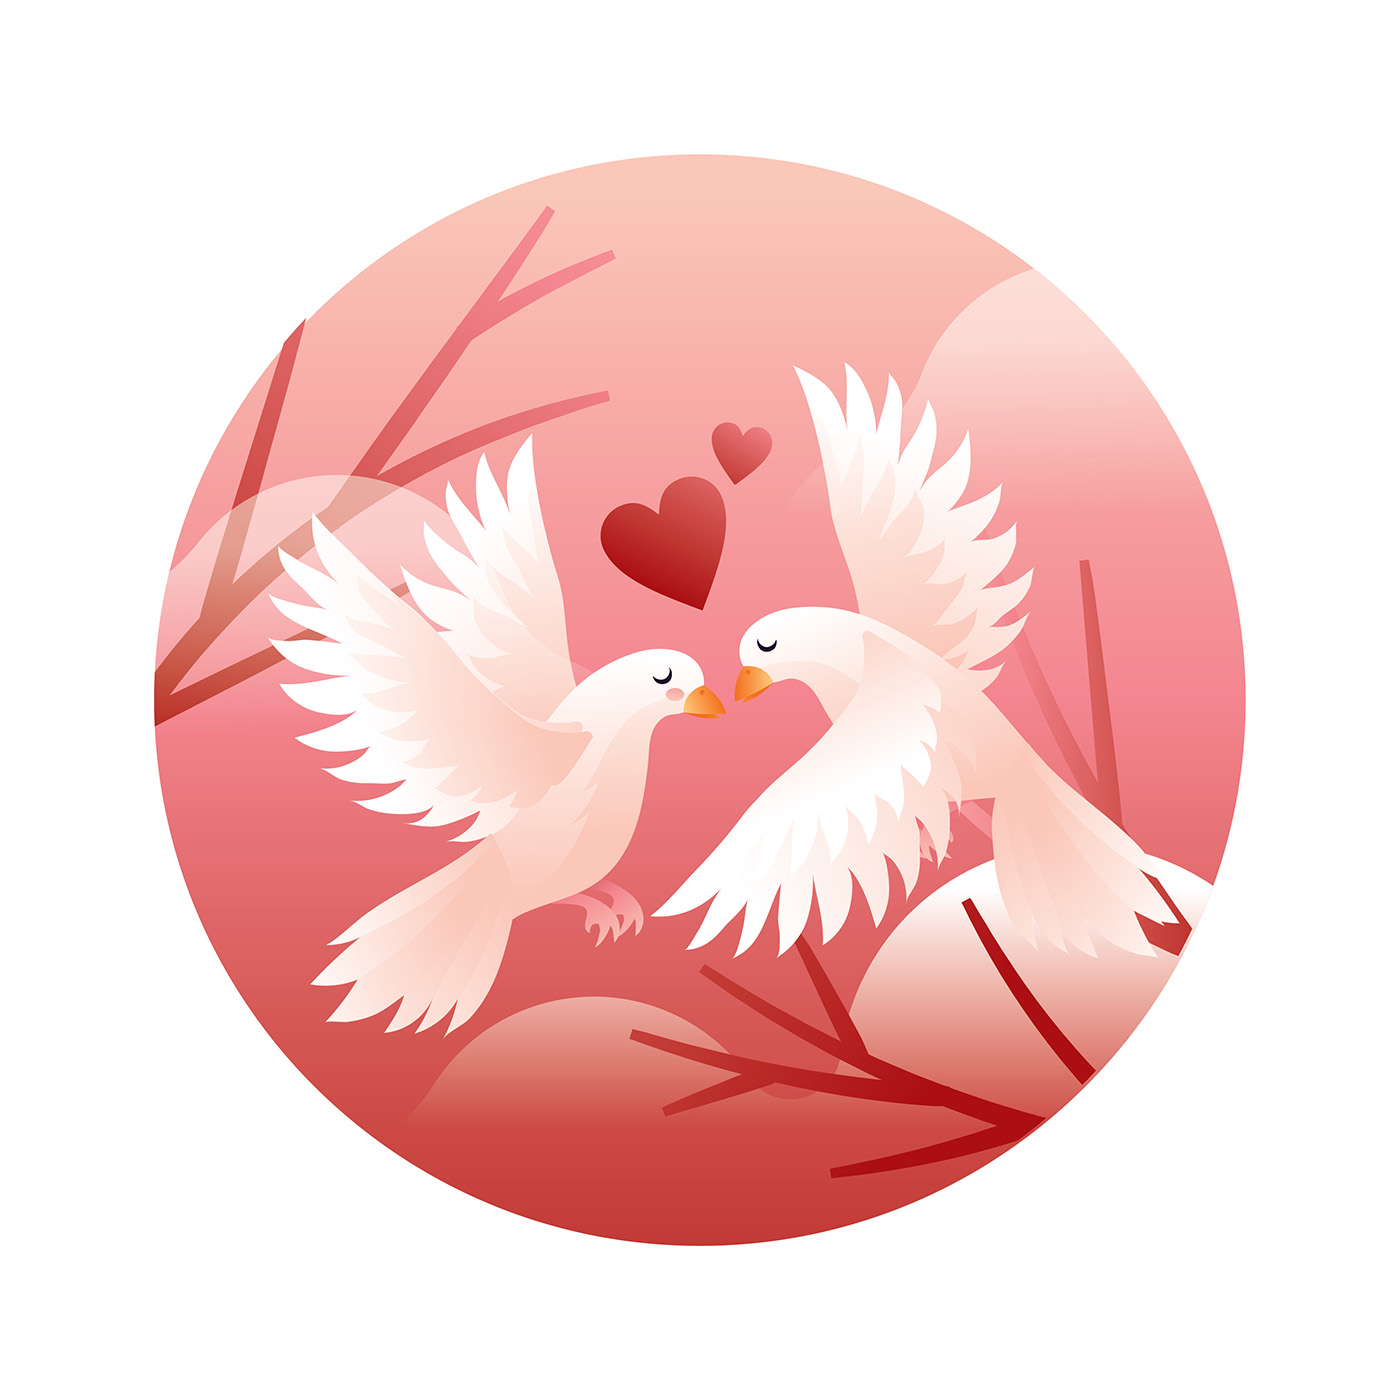 Dove Couple In Love Vector - Download Free Vector Art, Stock ...